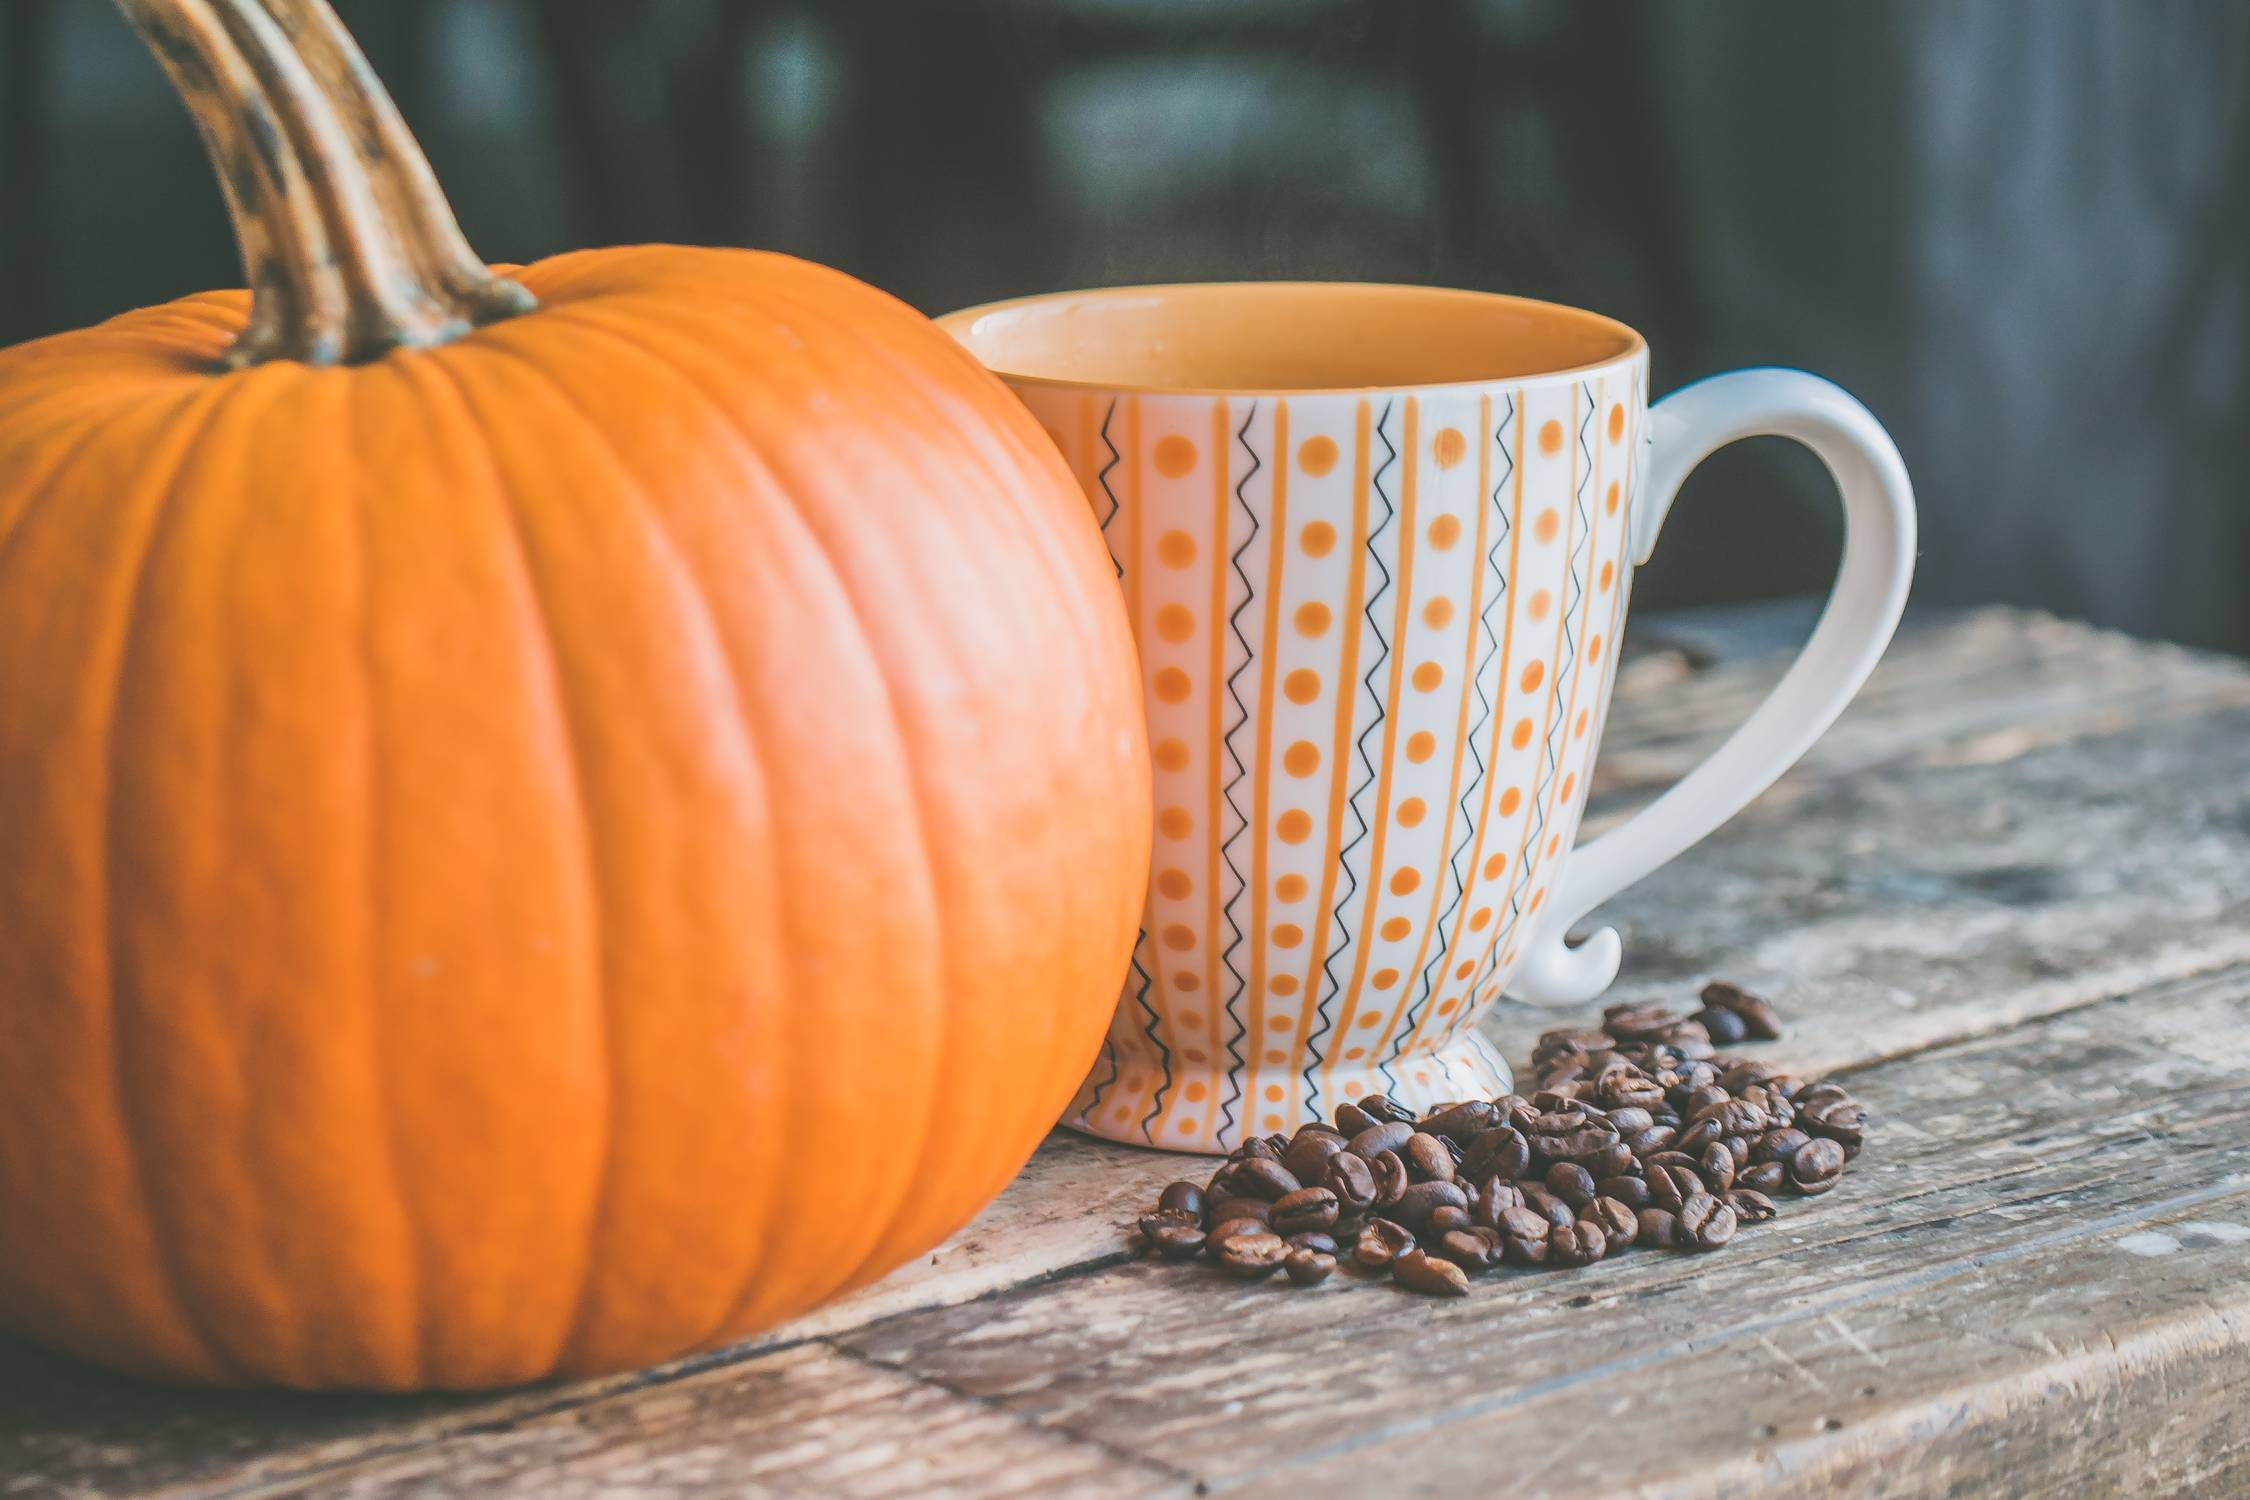 There's actually a PUMPKIN SPICE TAX